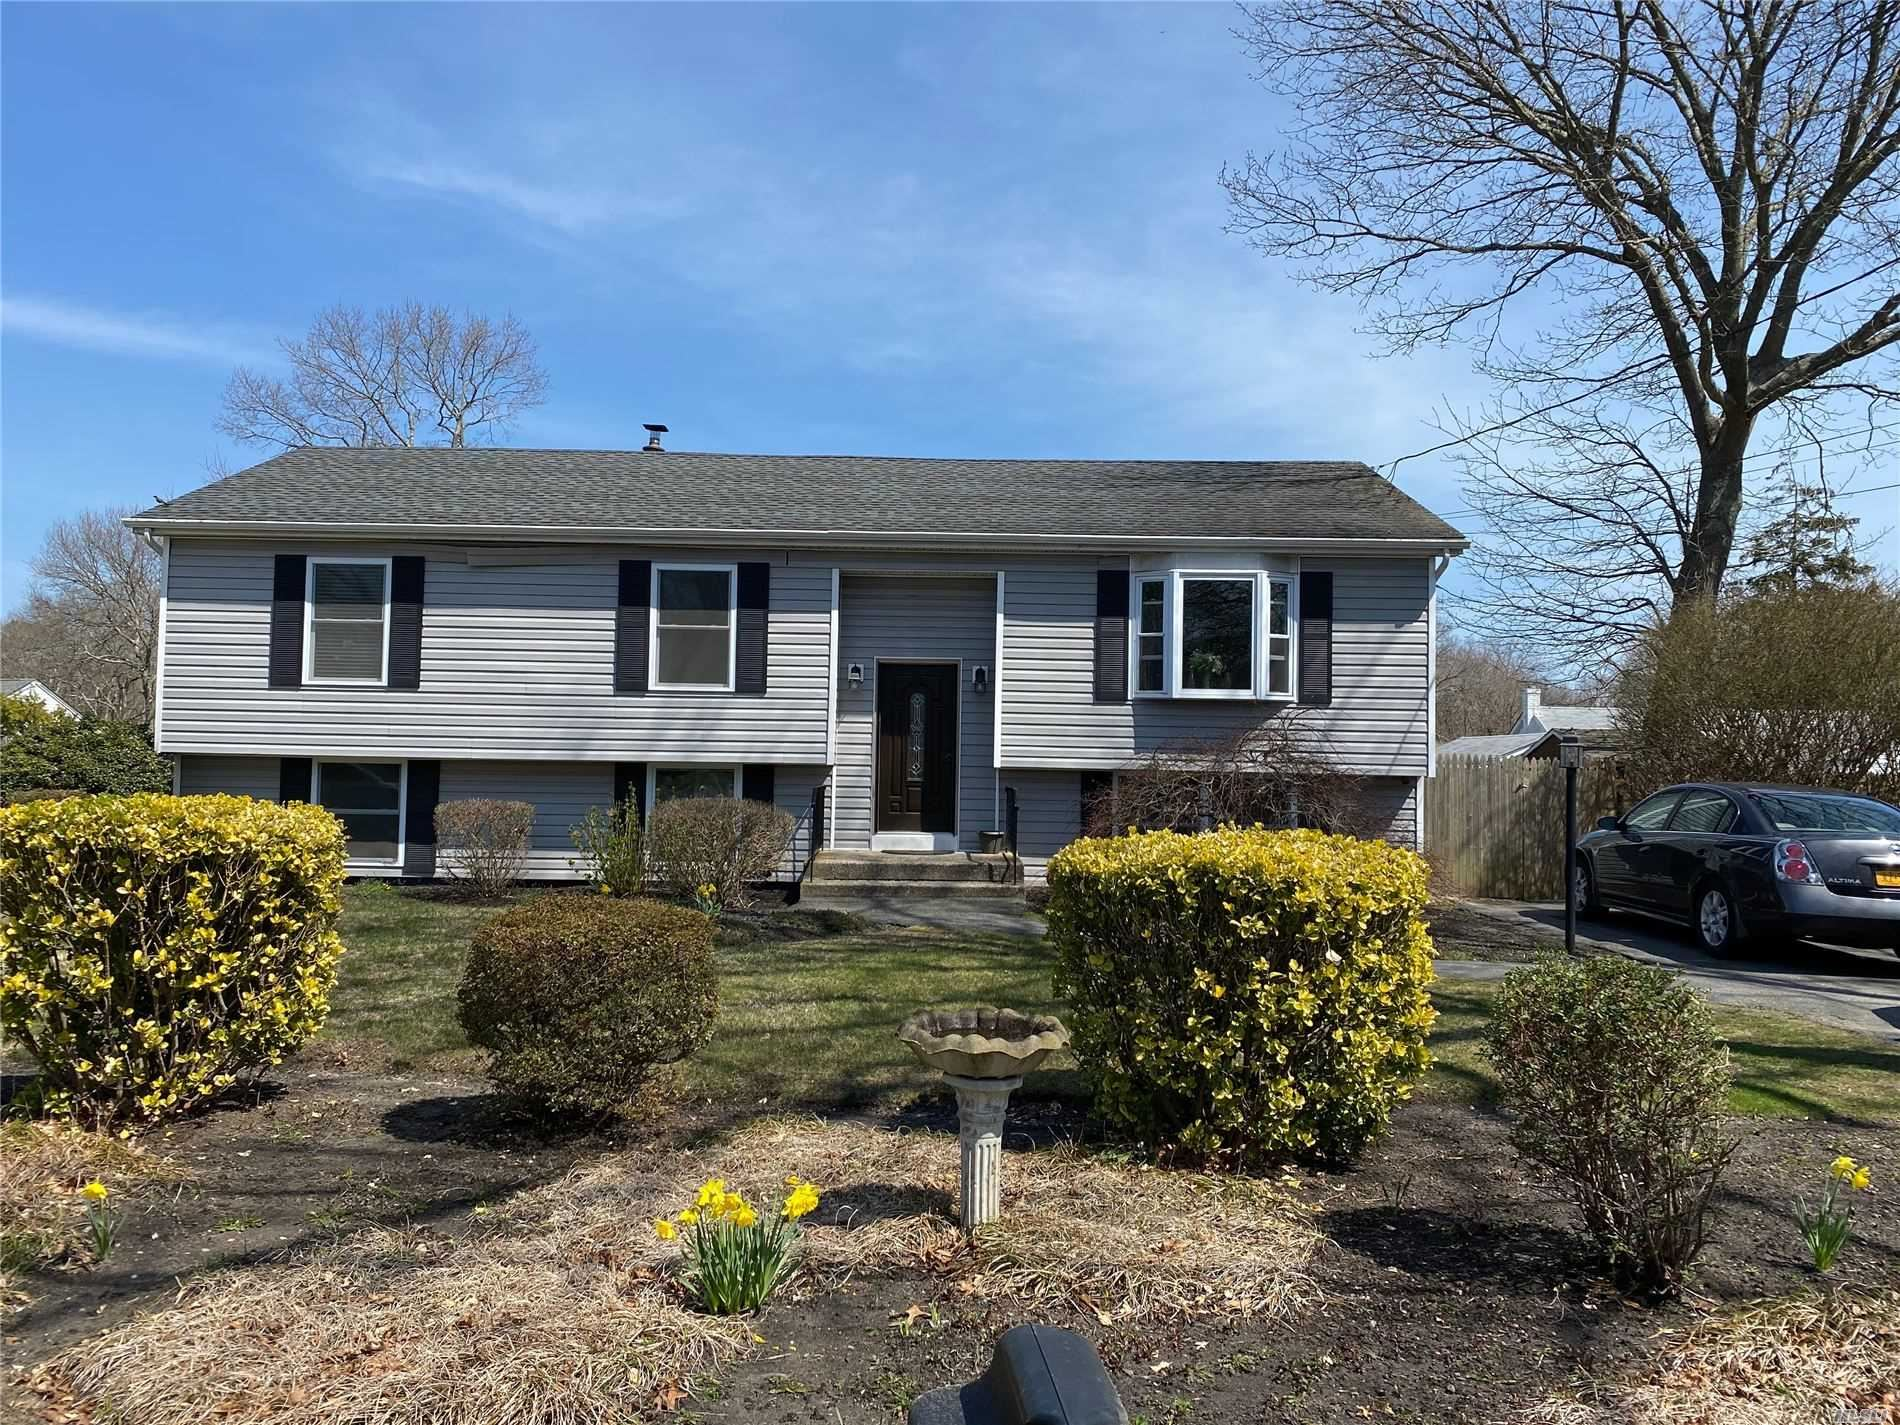 31 Concord Rd Rd, Shirley, NY 11967 - MLS#: 3210889